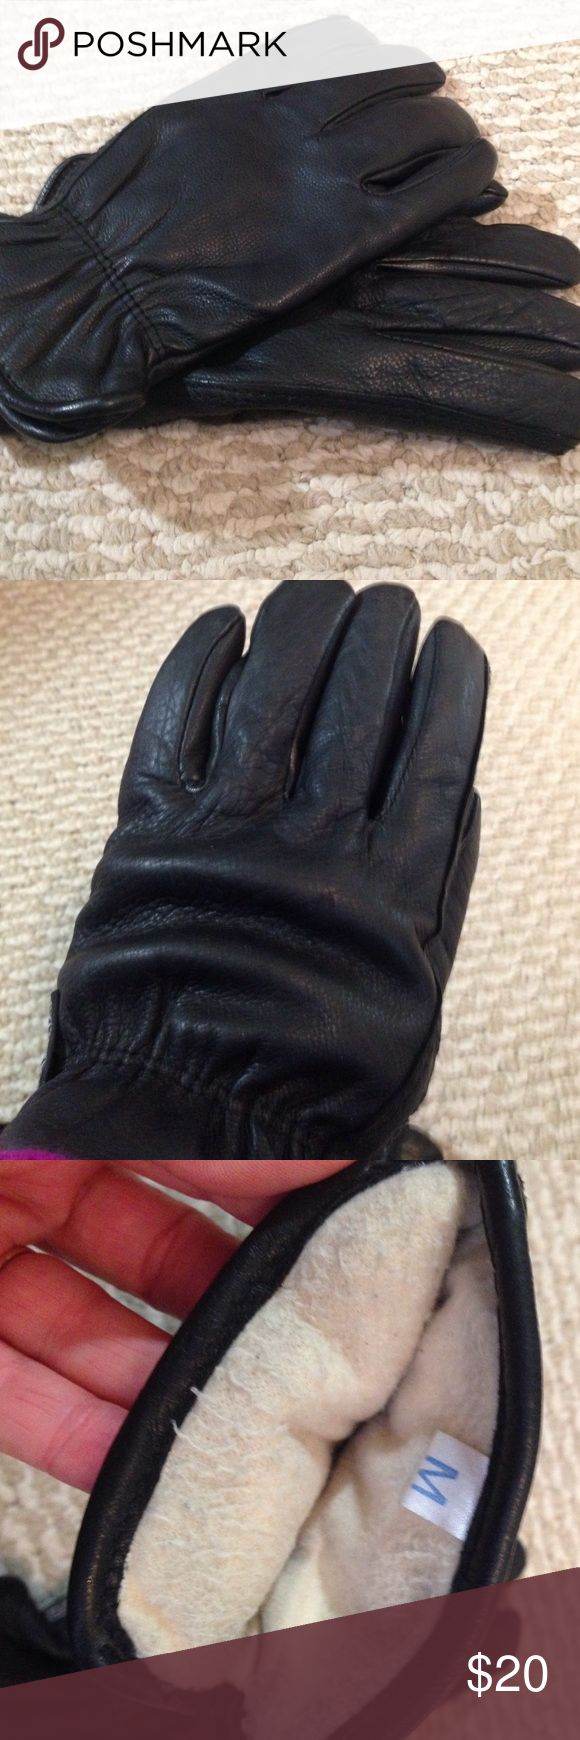 Long black leather gloves prices - Black Thinsulate And Leather Gloves